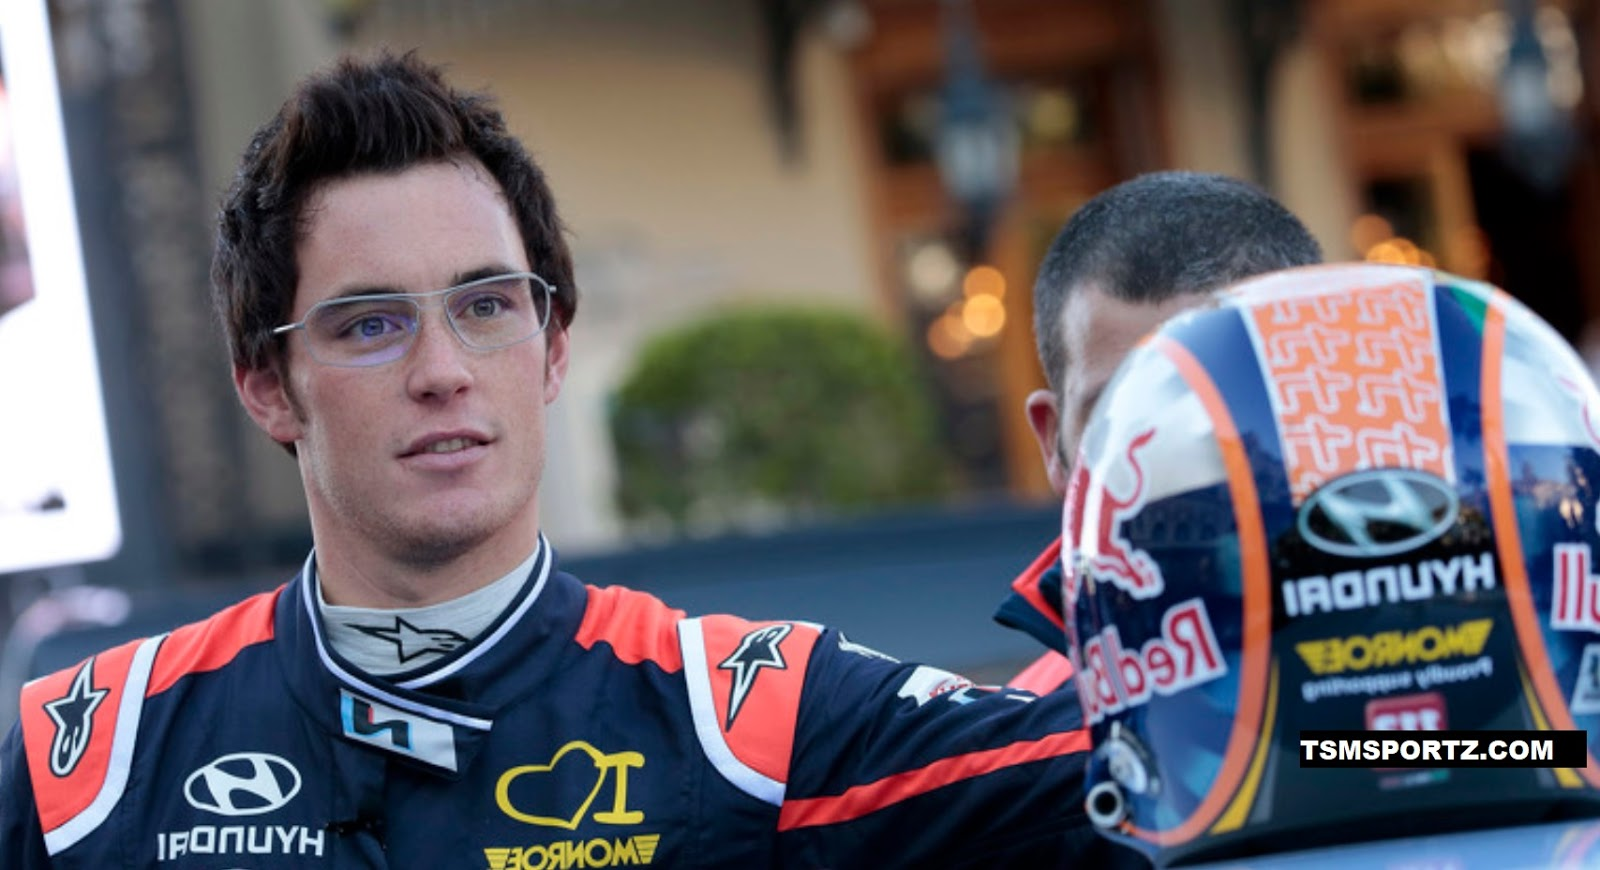 Thierry Neuville how much rich is 2017